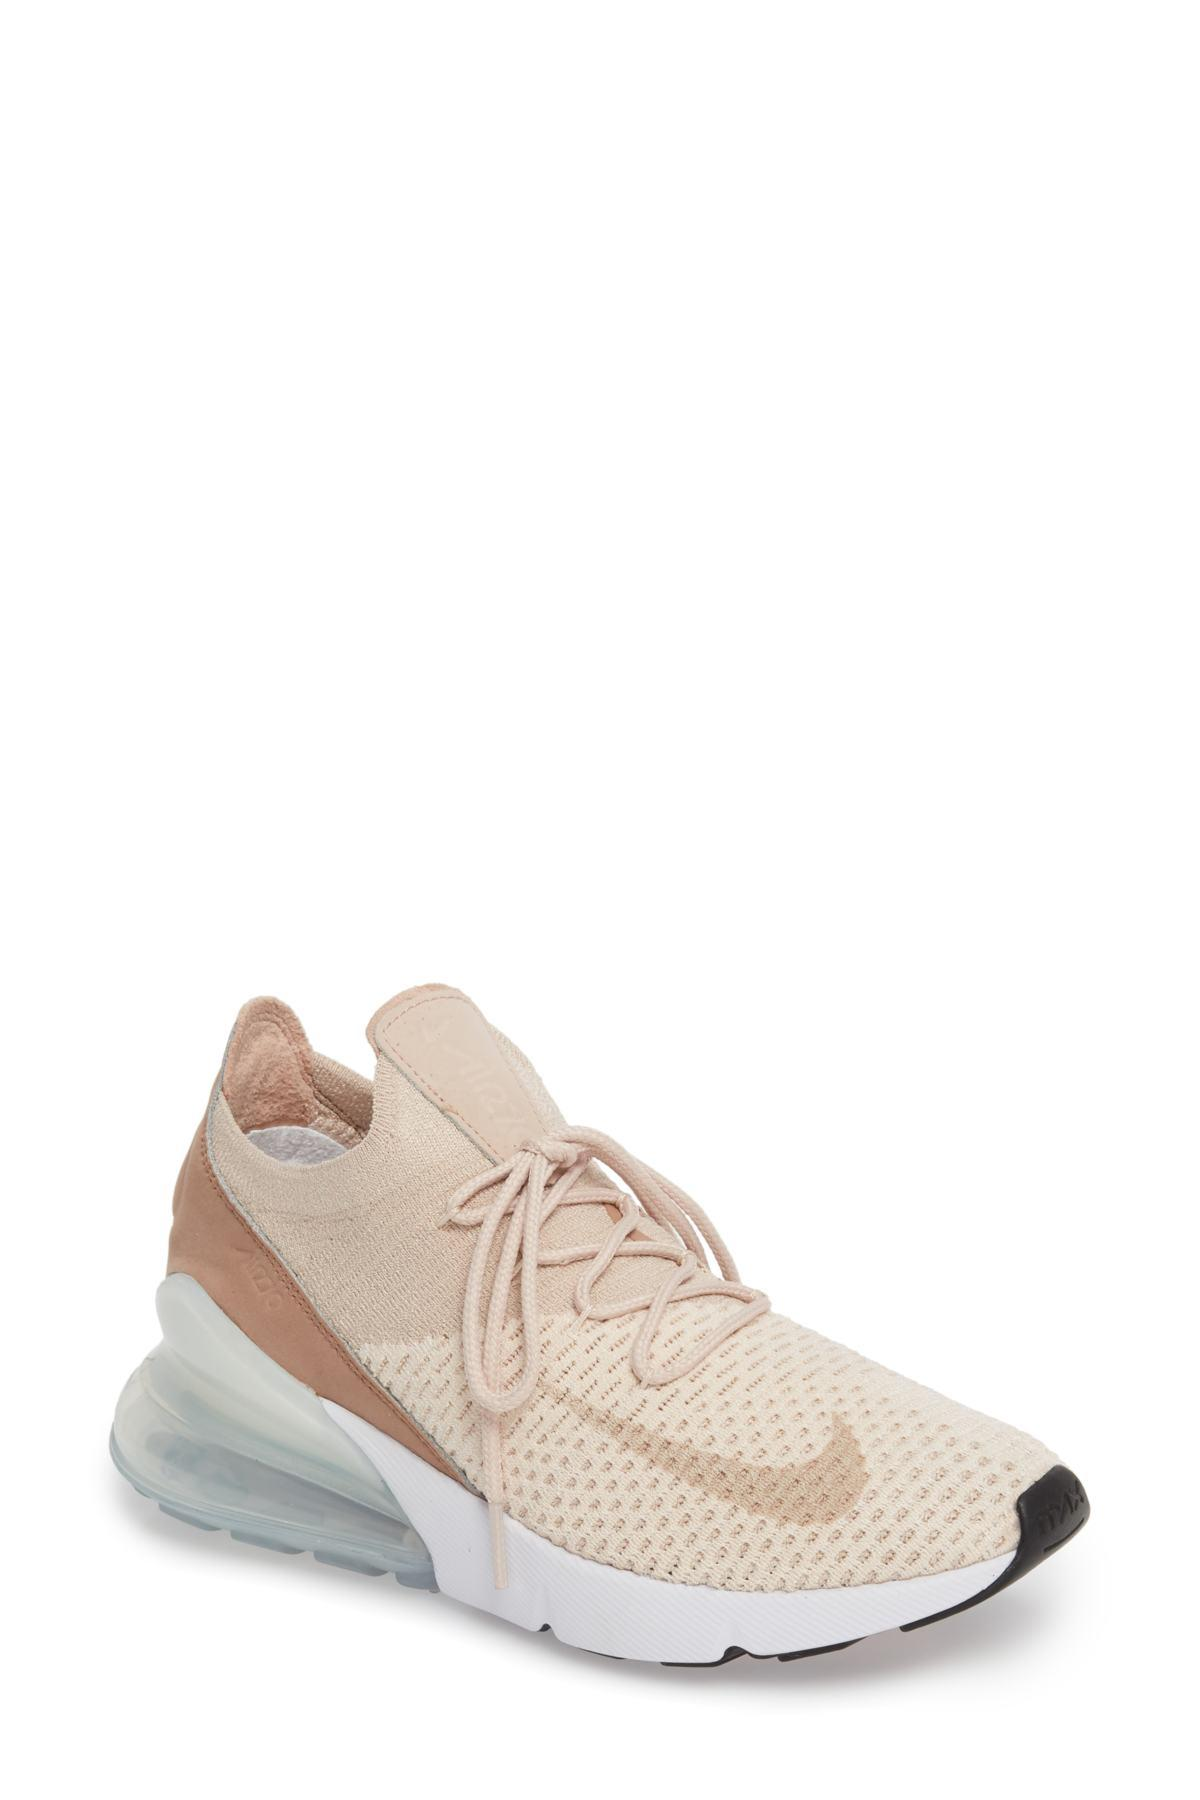 3a9fa28ffbae8 Lyst - Nike Air Max 270 Flyknit Sneaker (women) in Natural